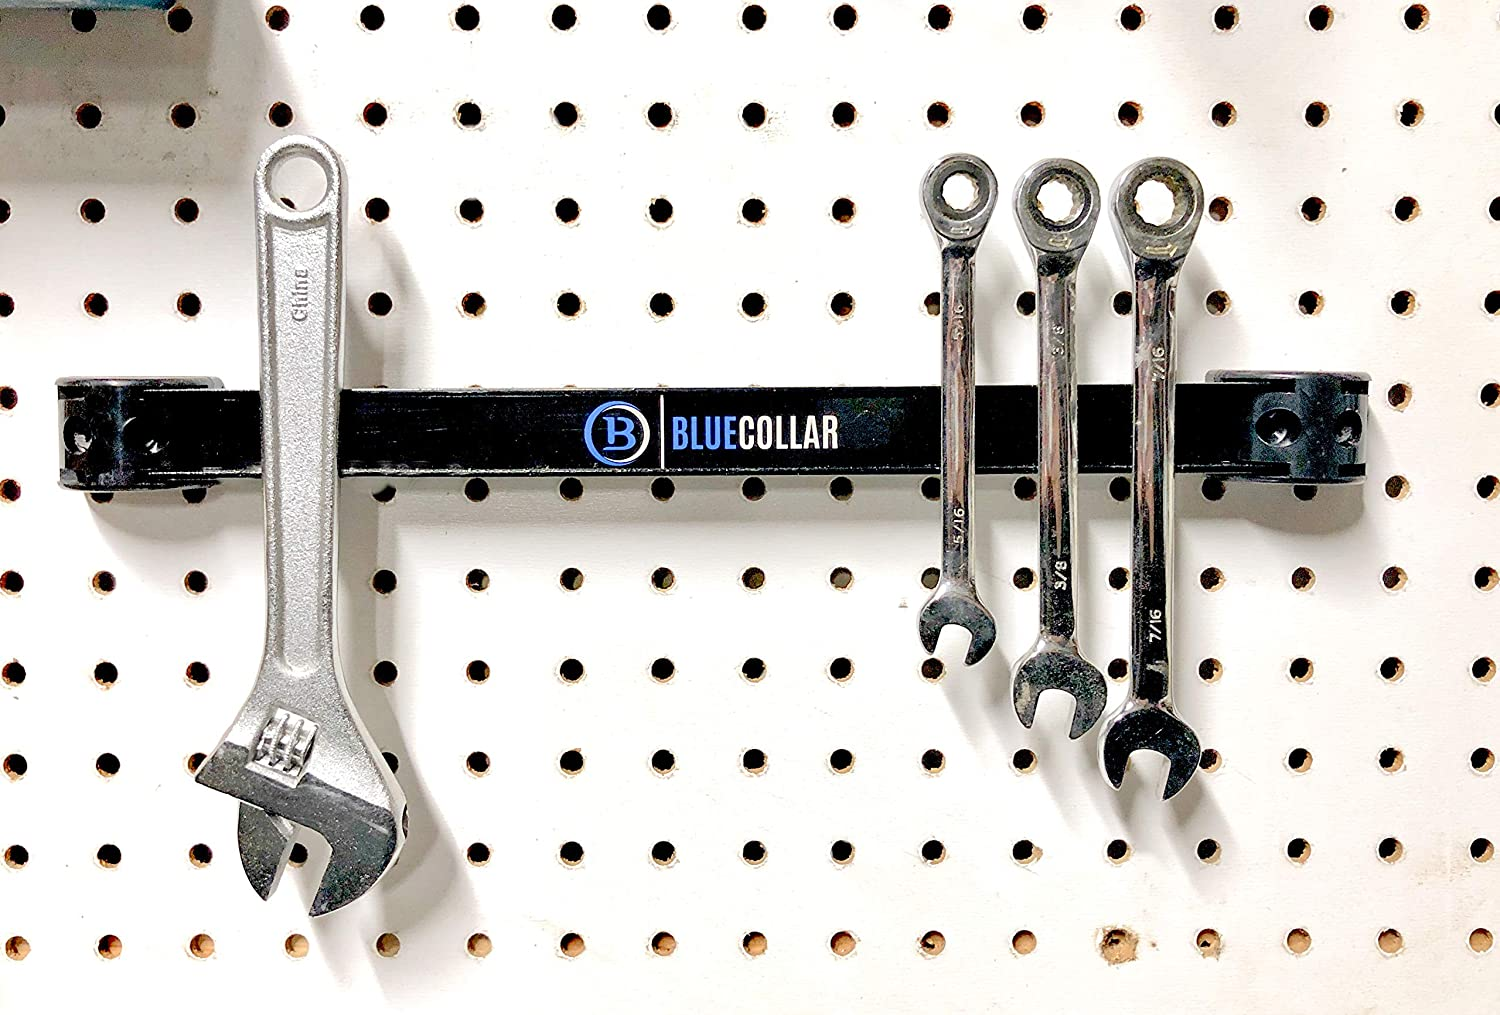 Industrial Mounting Hardware Included Blue Collar Tools 3 Pack of Size 16 Strong Magnet Strip Tool Holder and Hardware Organizer Blue Collar Magnetic Tool Holder Bar Set